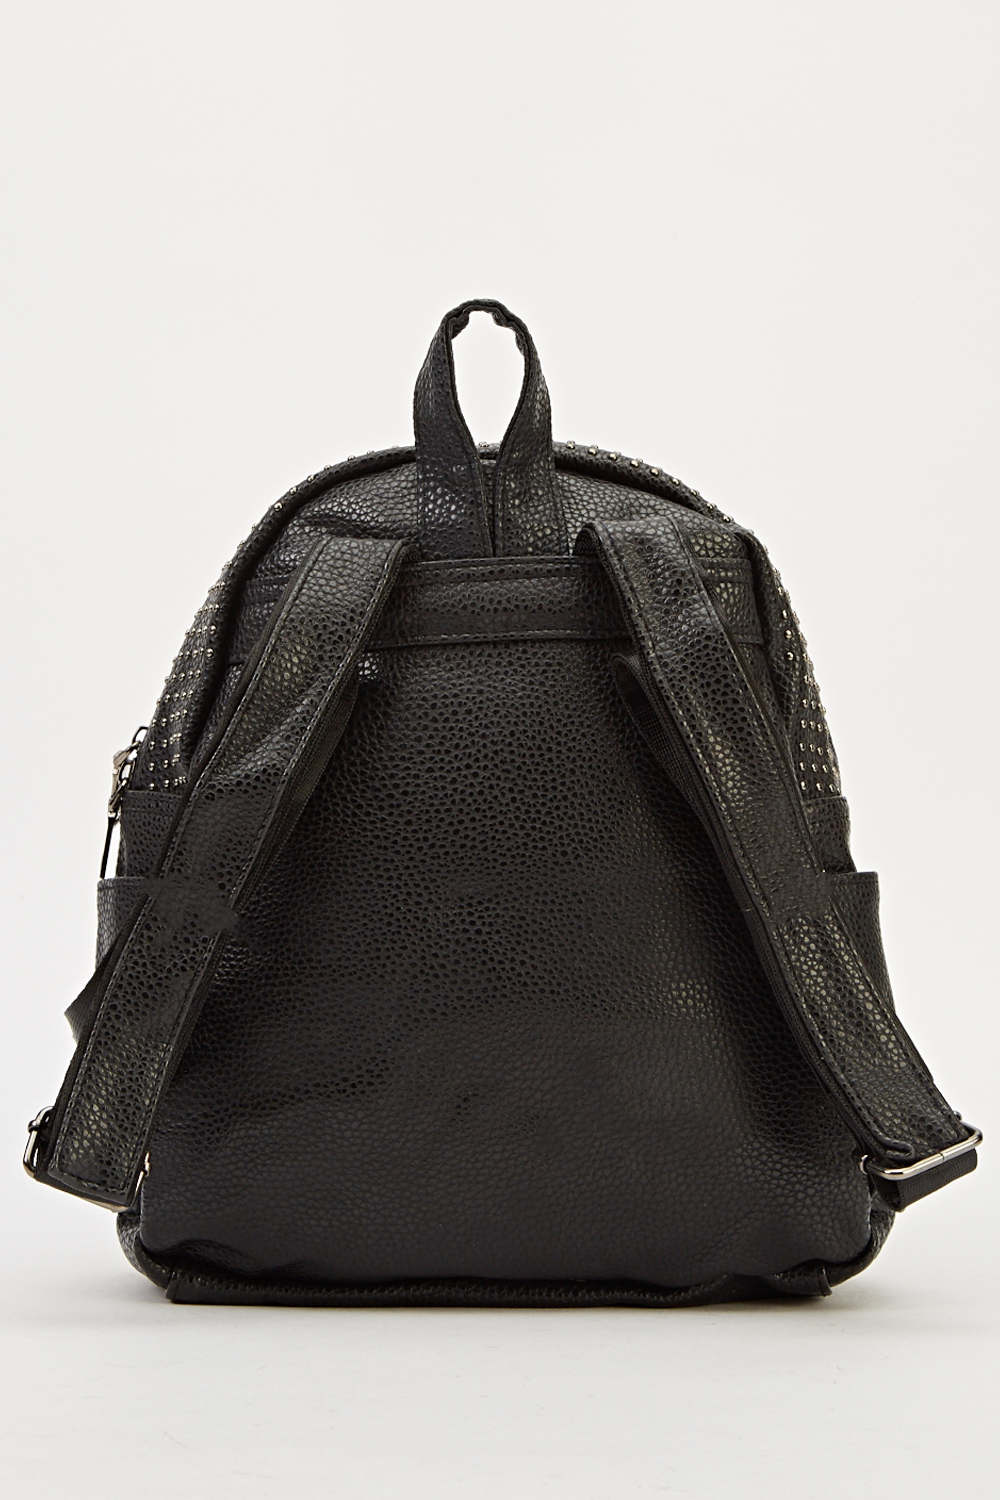 Cat Patch Studded Top Small Backpack Www Edsfashions Co